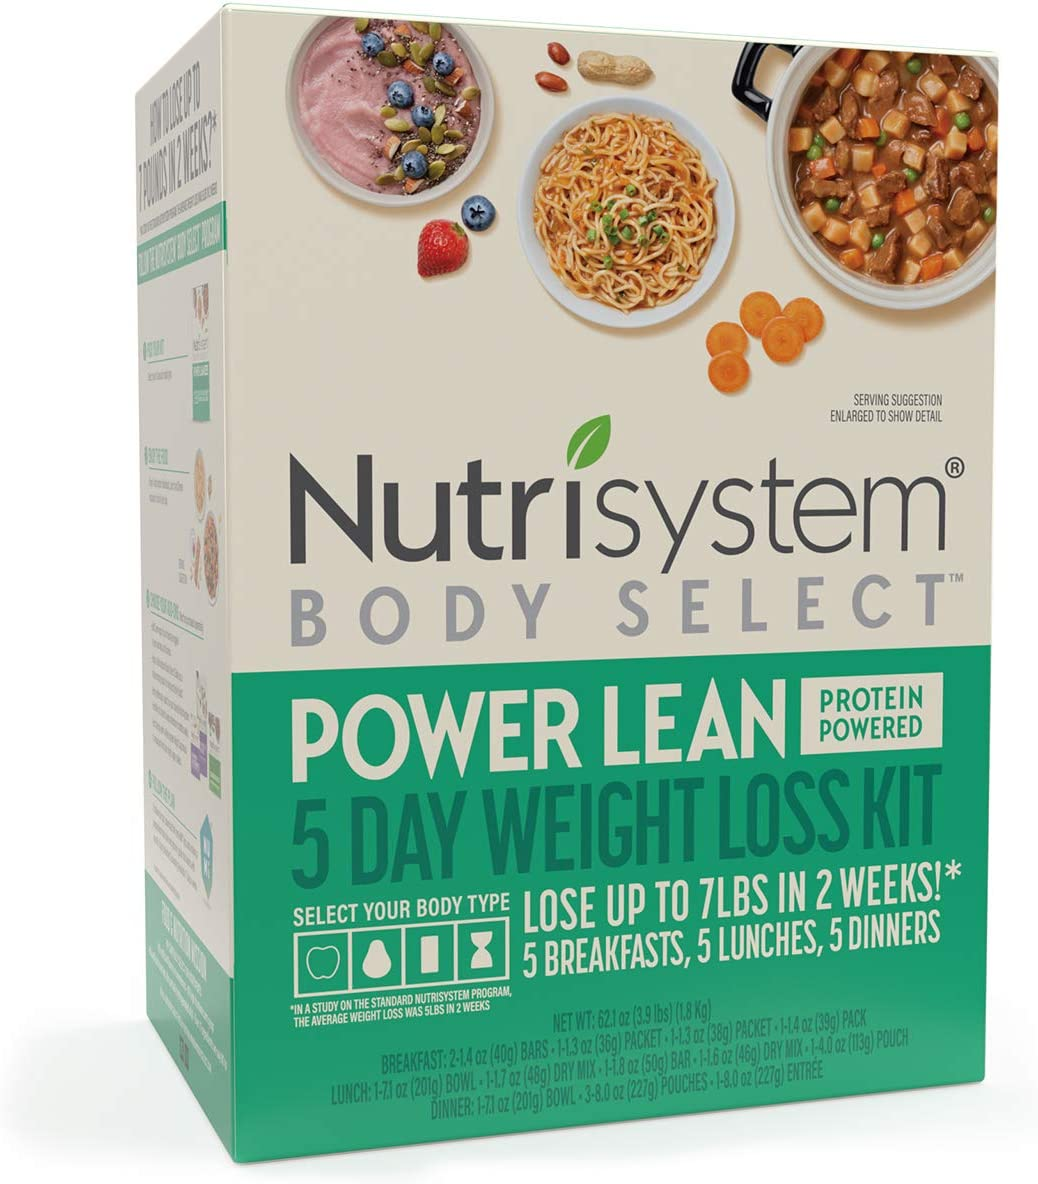 Nutrisystem® Body Select™ Power Lean 5-Day Weight Loss Kit: Delicious Meals with Protein Powered Nutrition